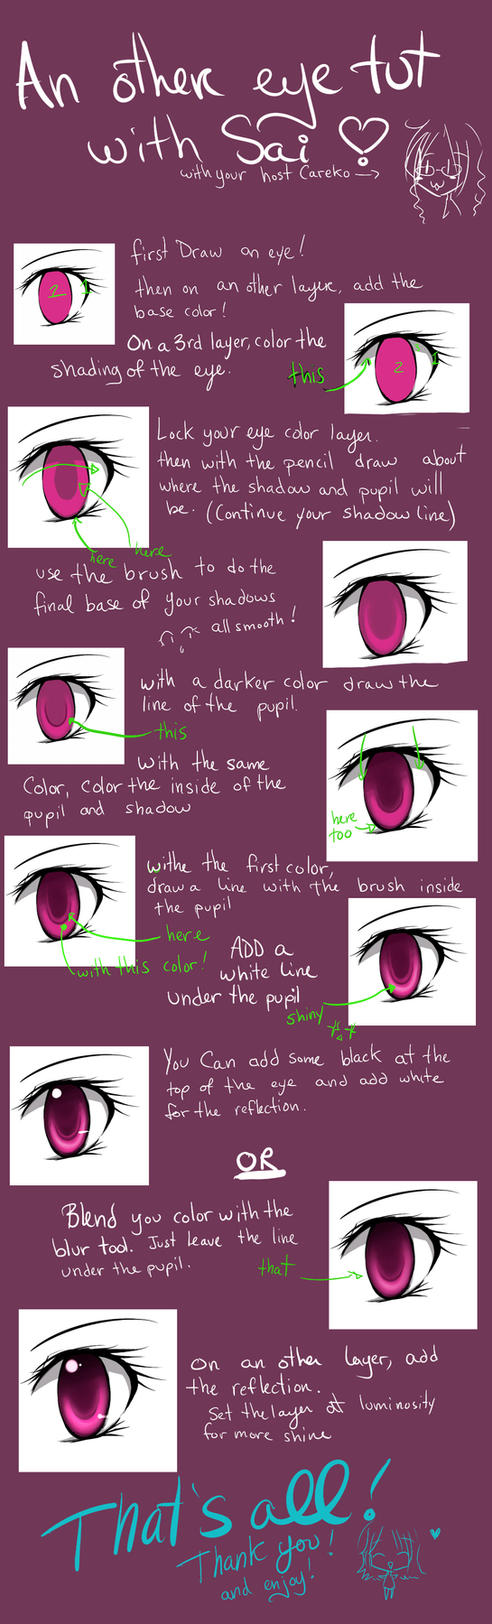 Another eye tutorial in SAI by careko